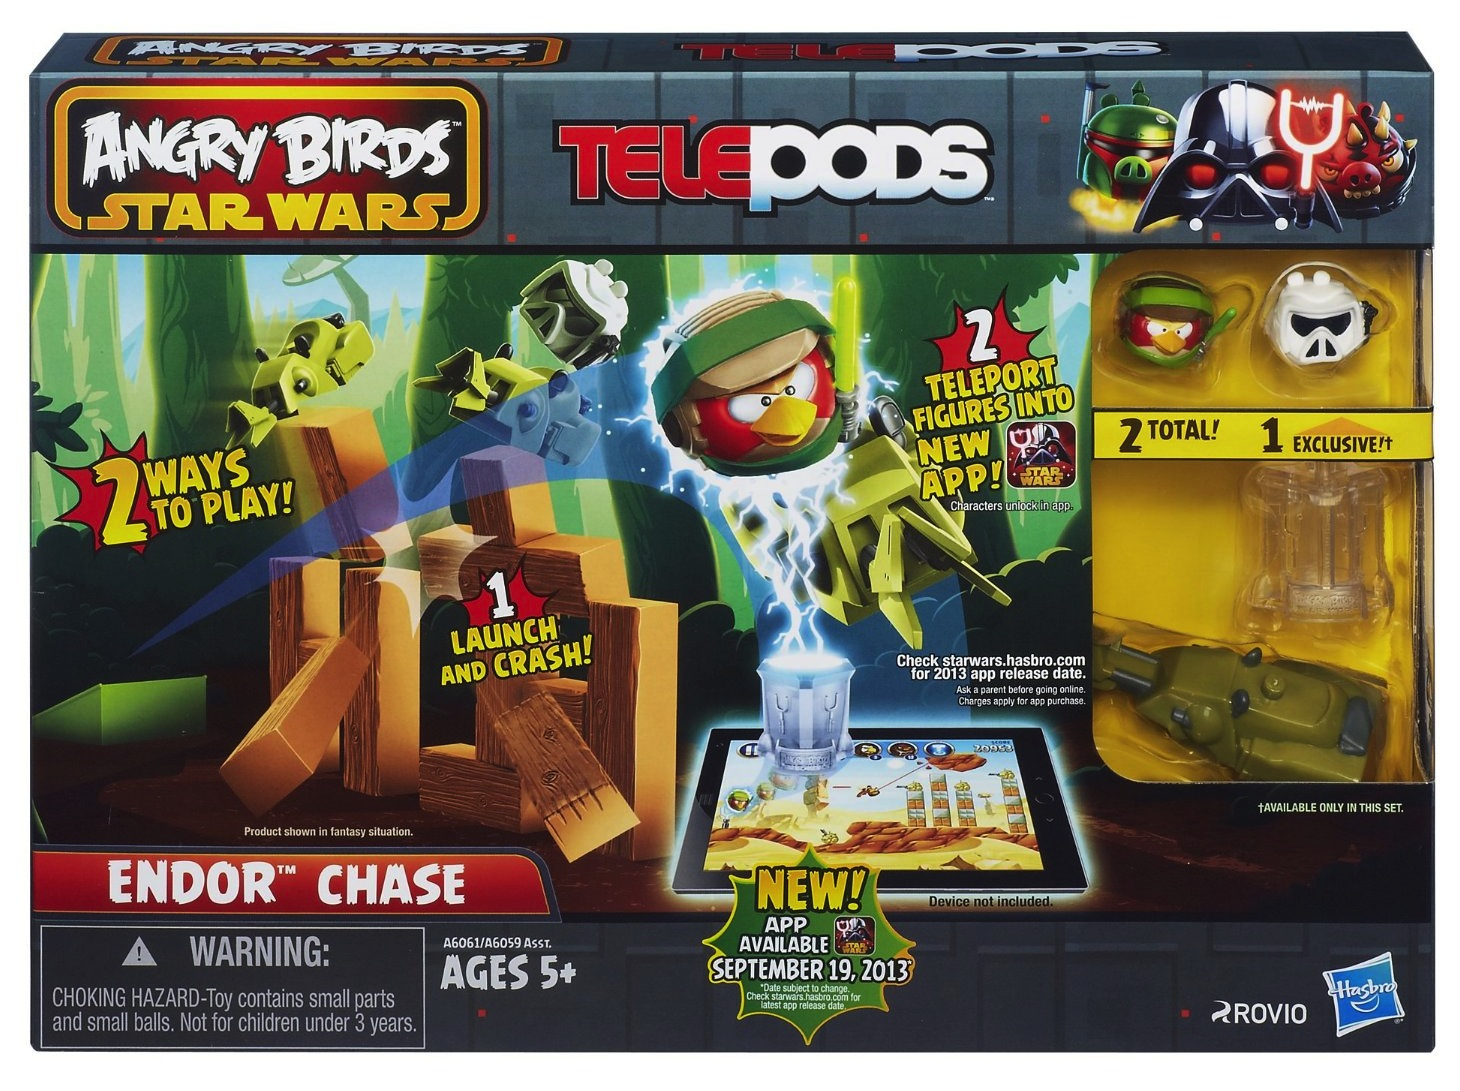 Angry birds star wars telepods review and reader giveaway - Angry birds star wars 8 ...